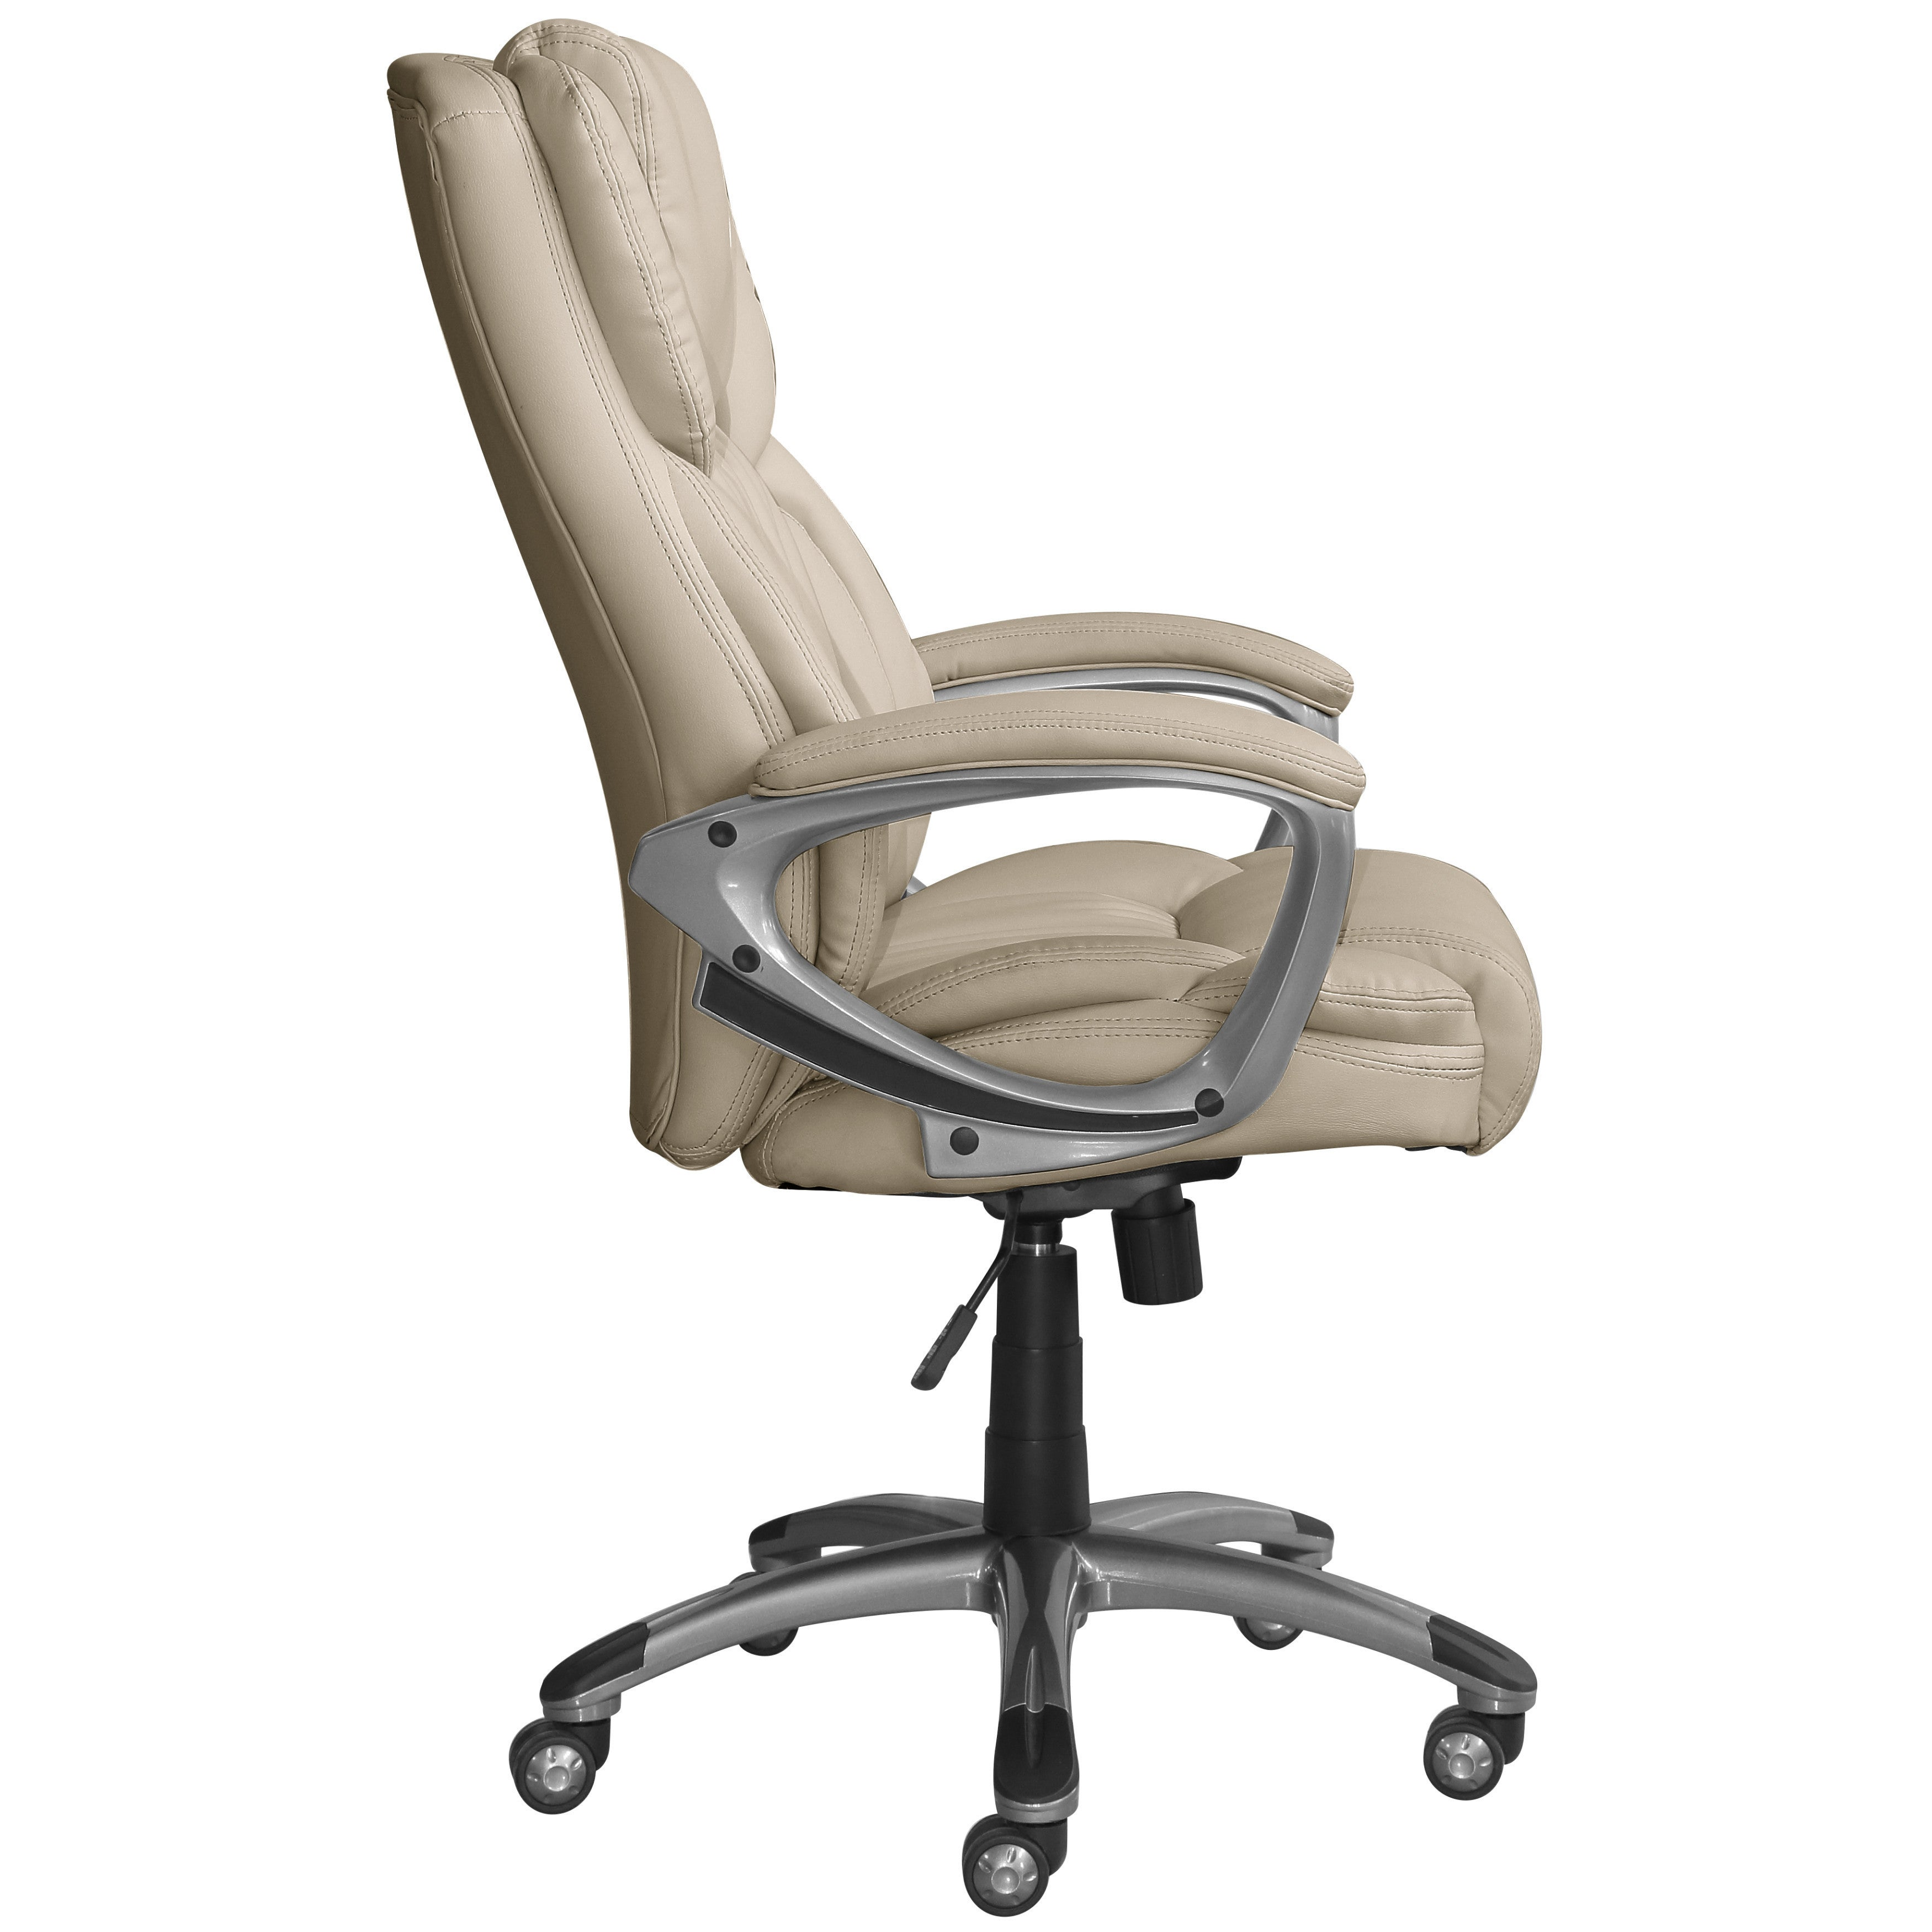 Serta Works Bonded Leather Executive fice Chair Free Shipping